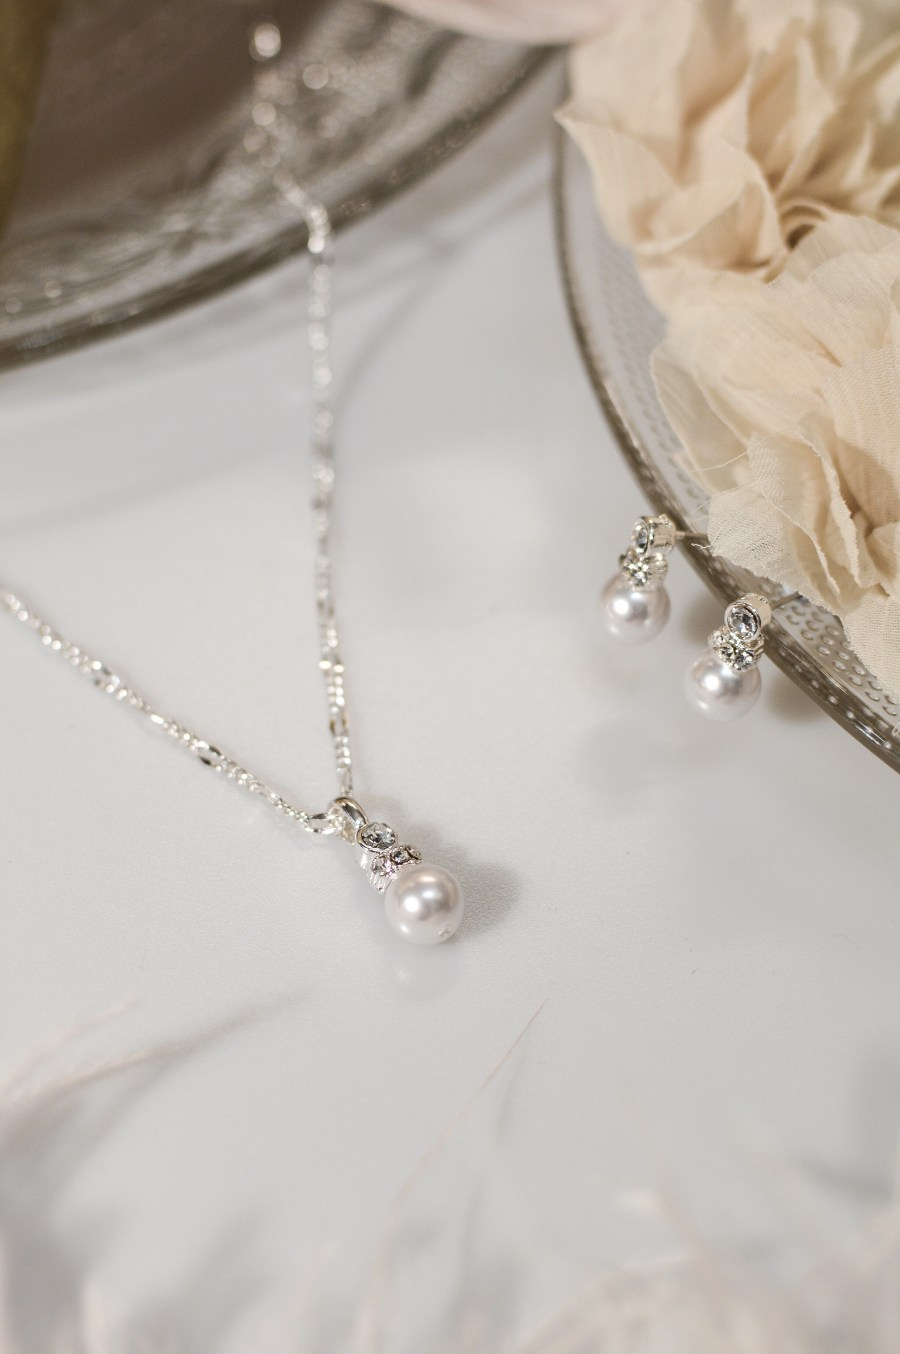 TLS1536 wedding jewellery set for brides with pearl and diamante details